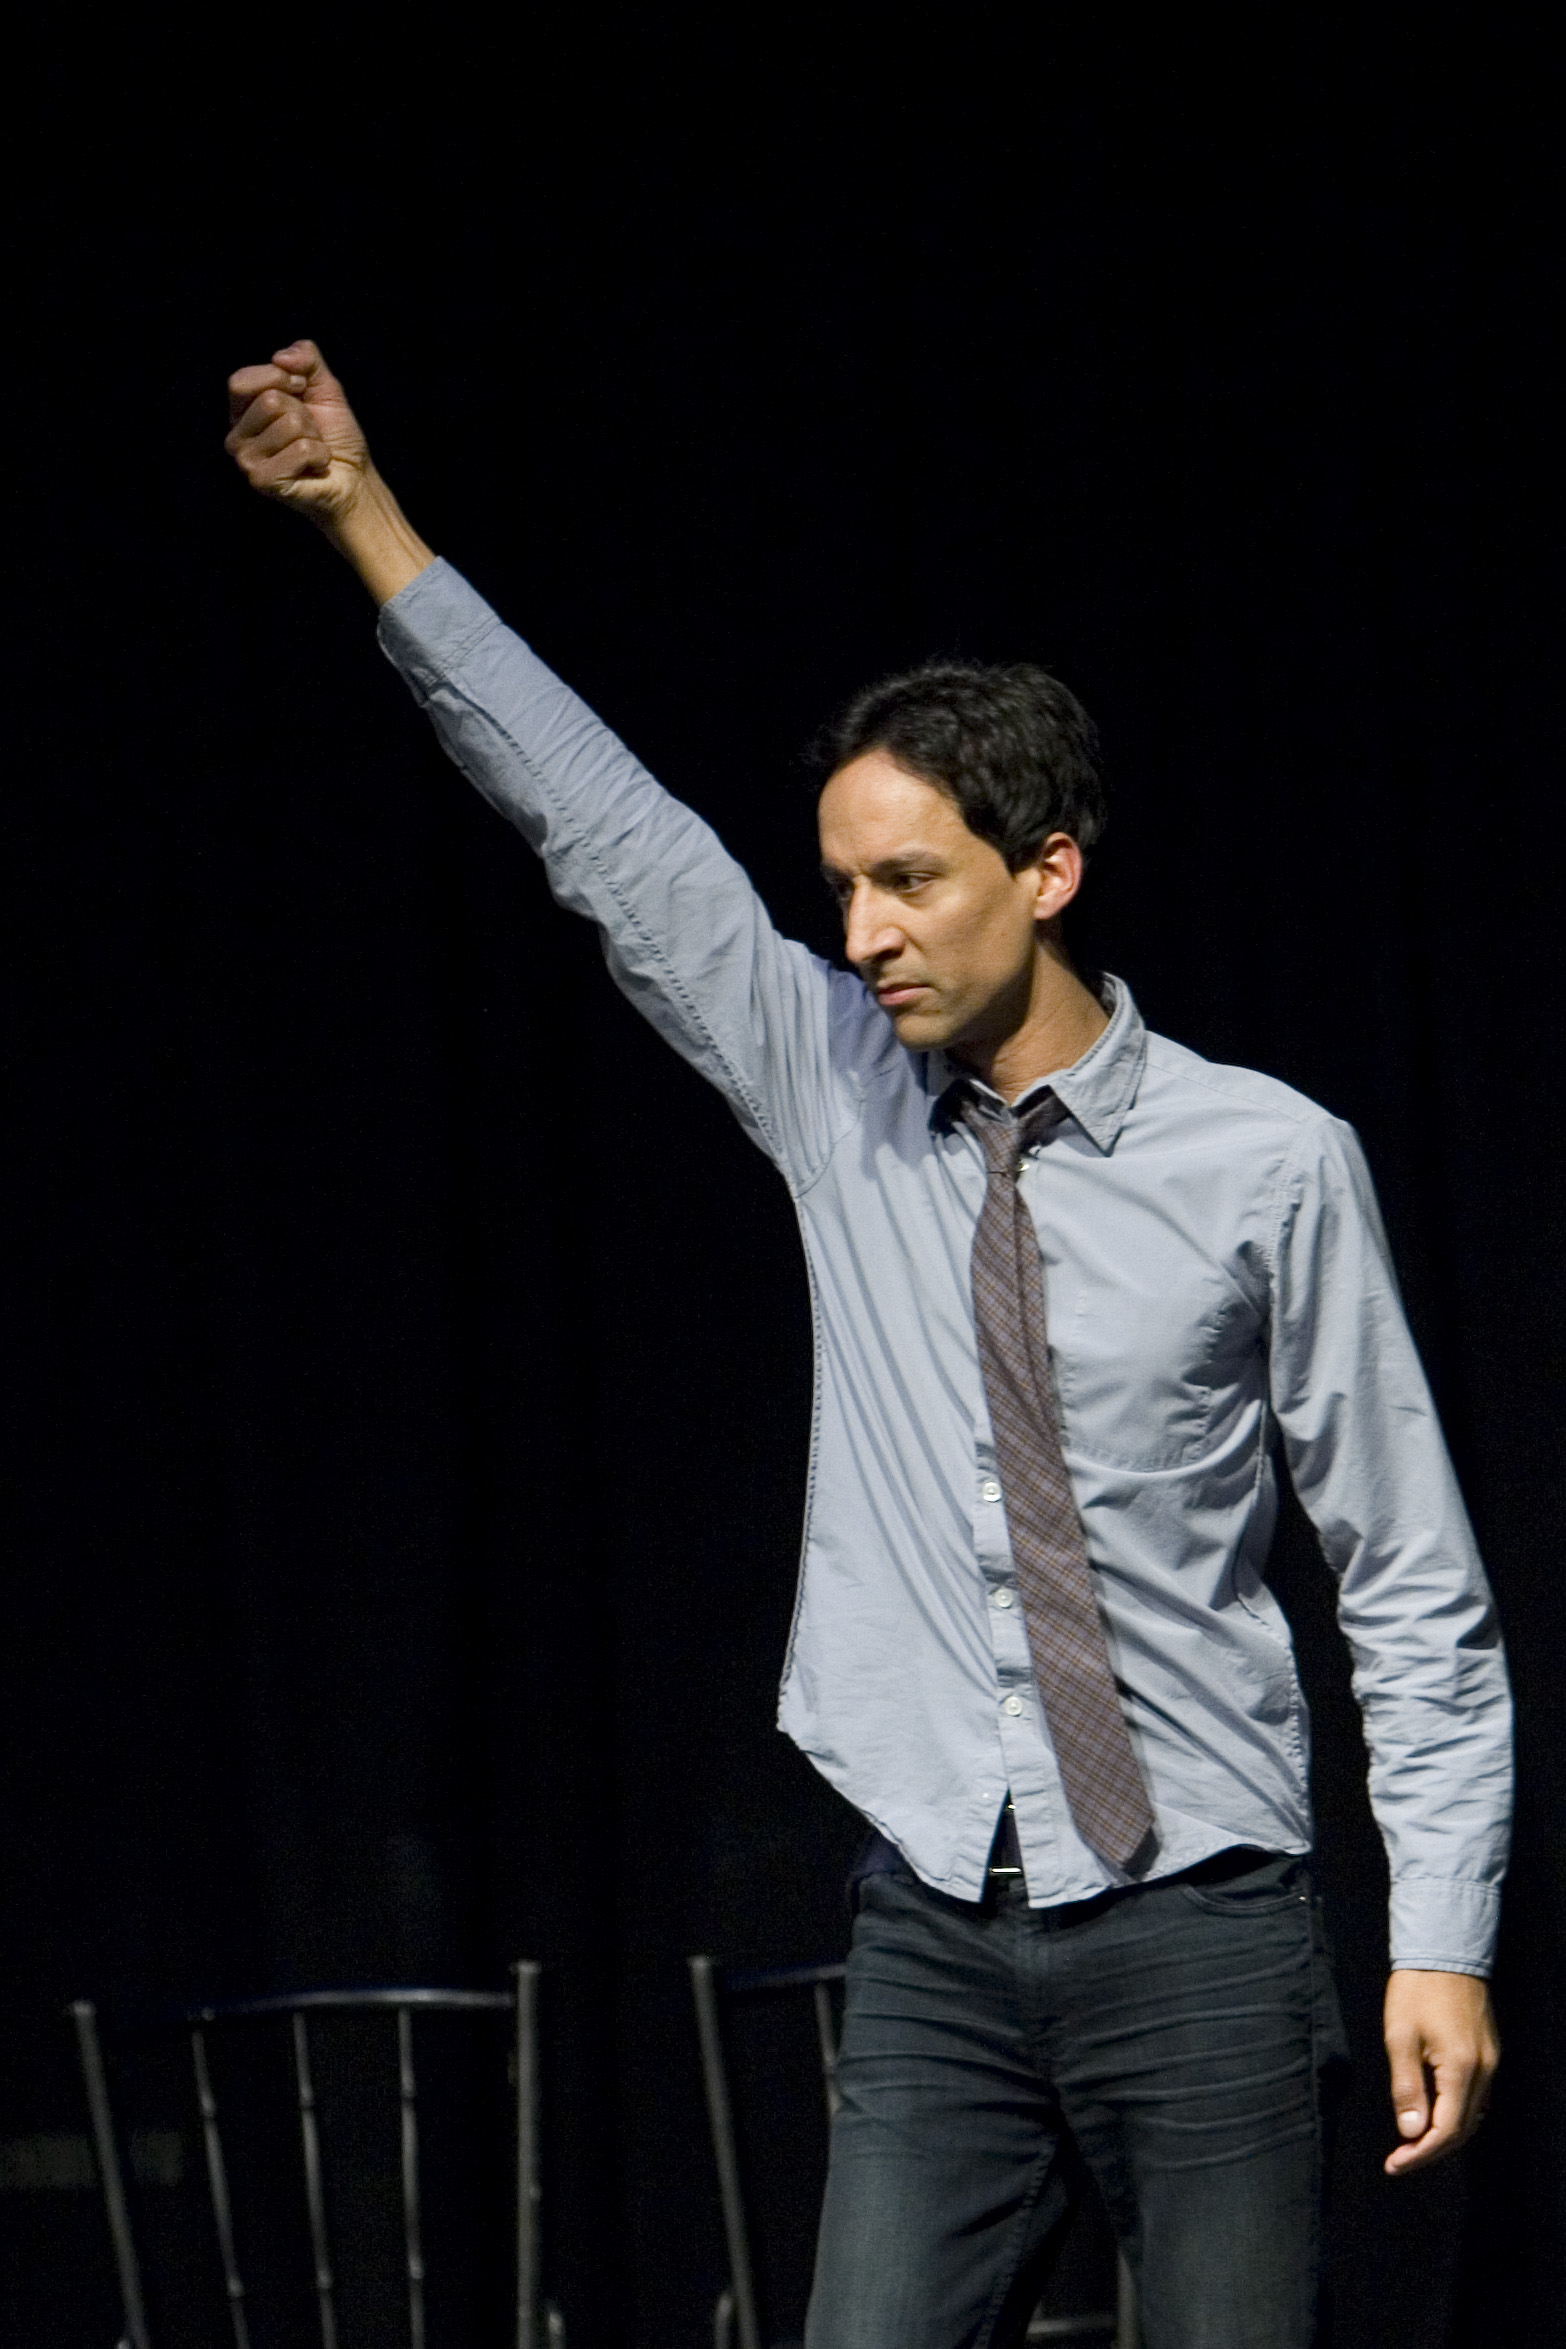 Danny Pudi at Theme Park Improv at SF Sketchfest, January 23, 2011. Photo by Tommy Lau.